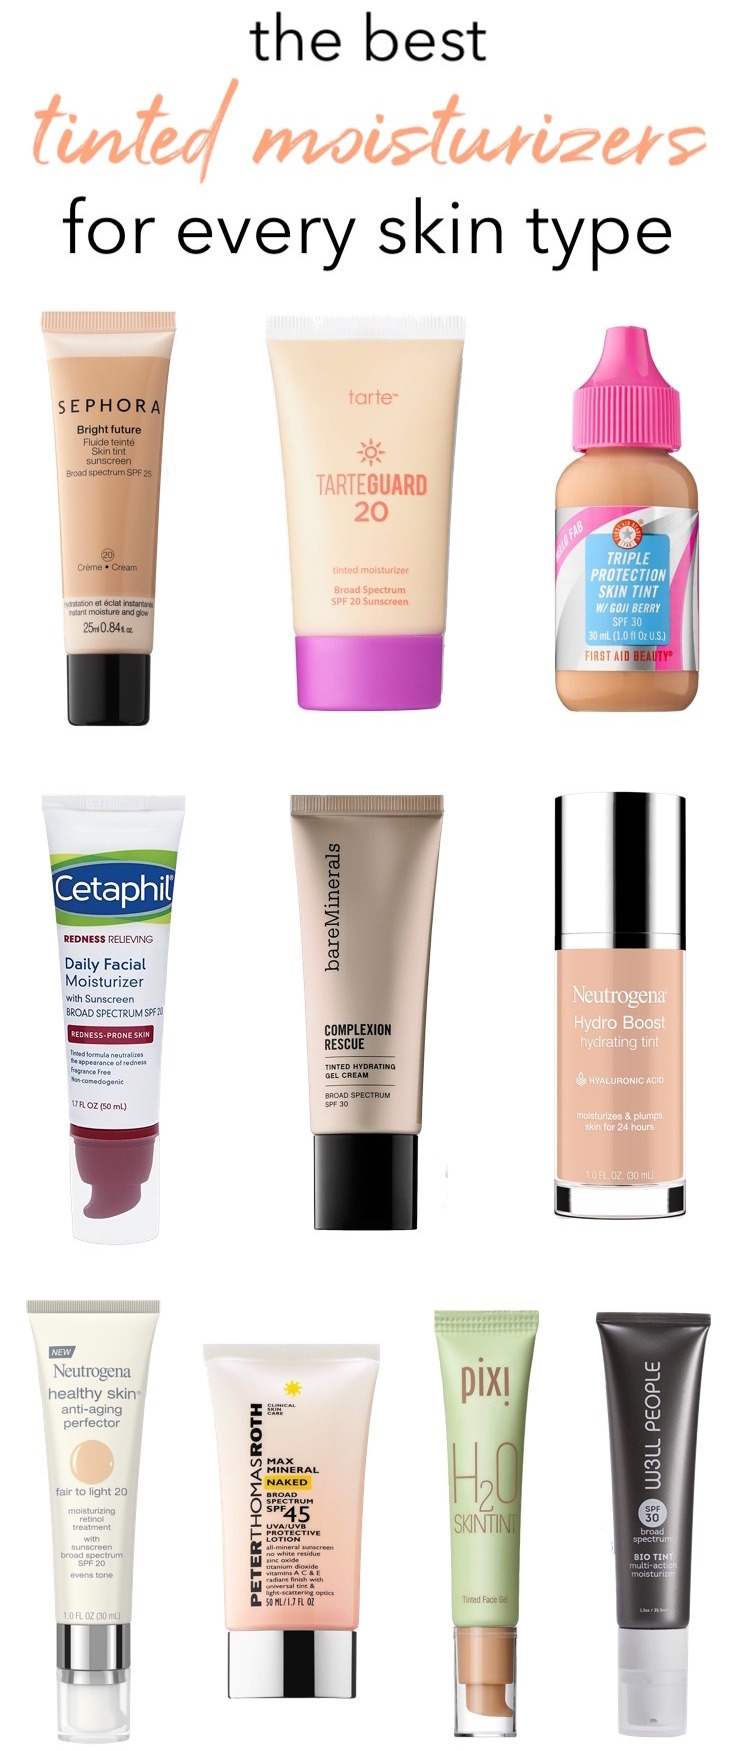 The Best Tinted Moisturizers For Every Skin Type ...